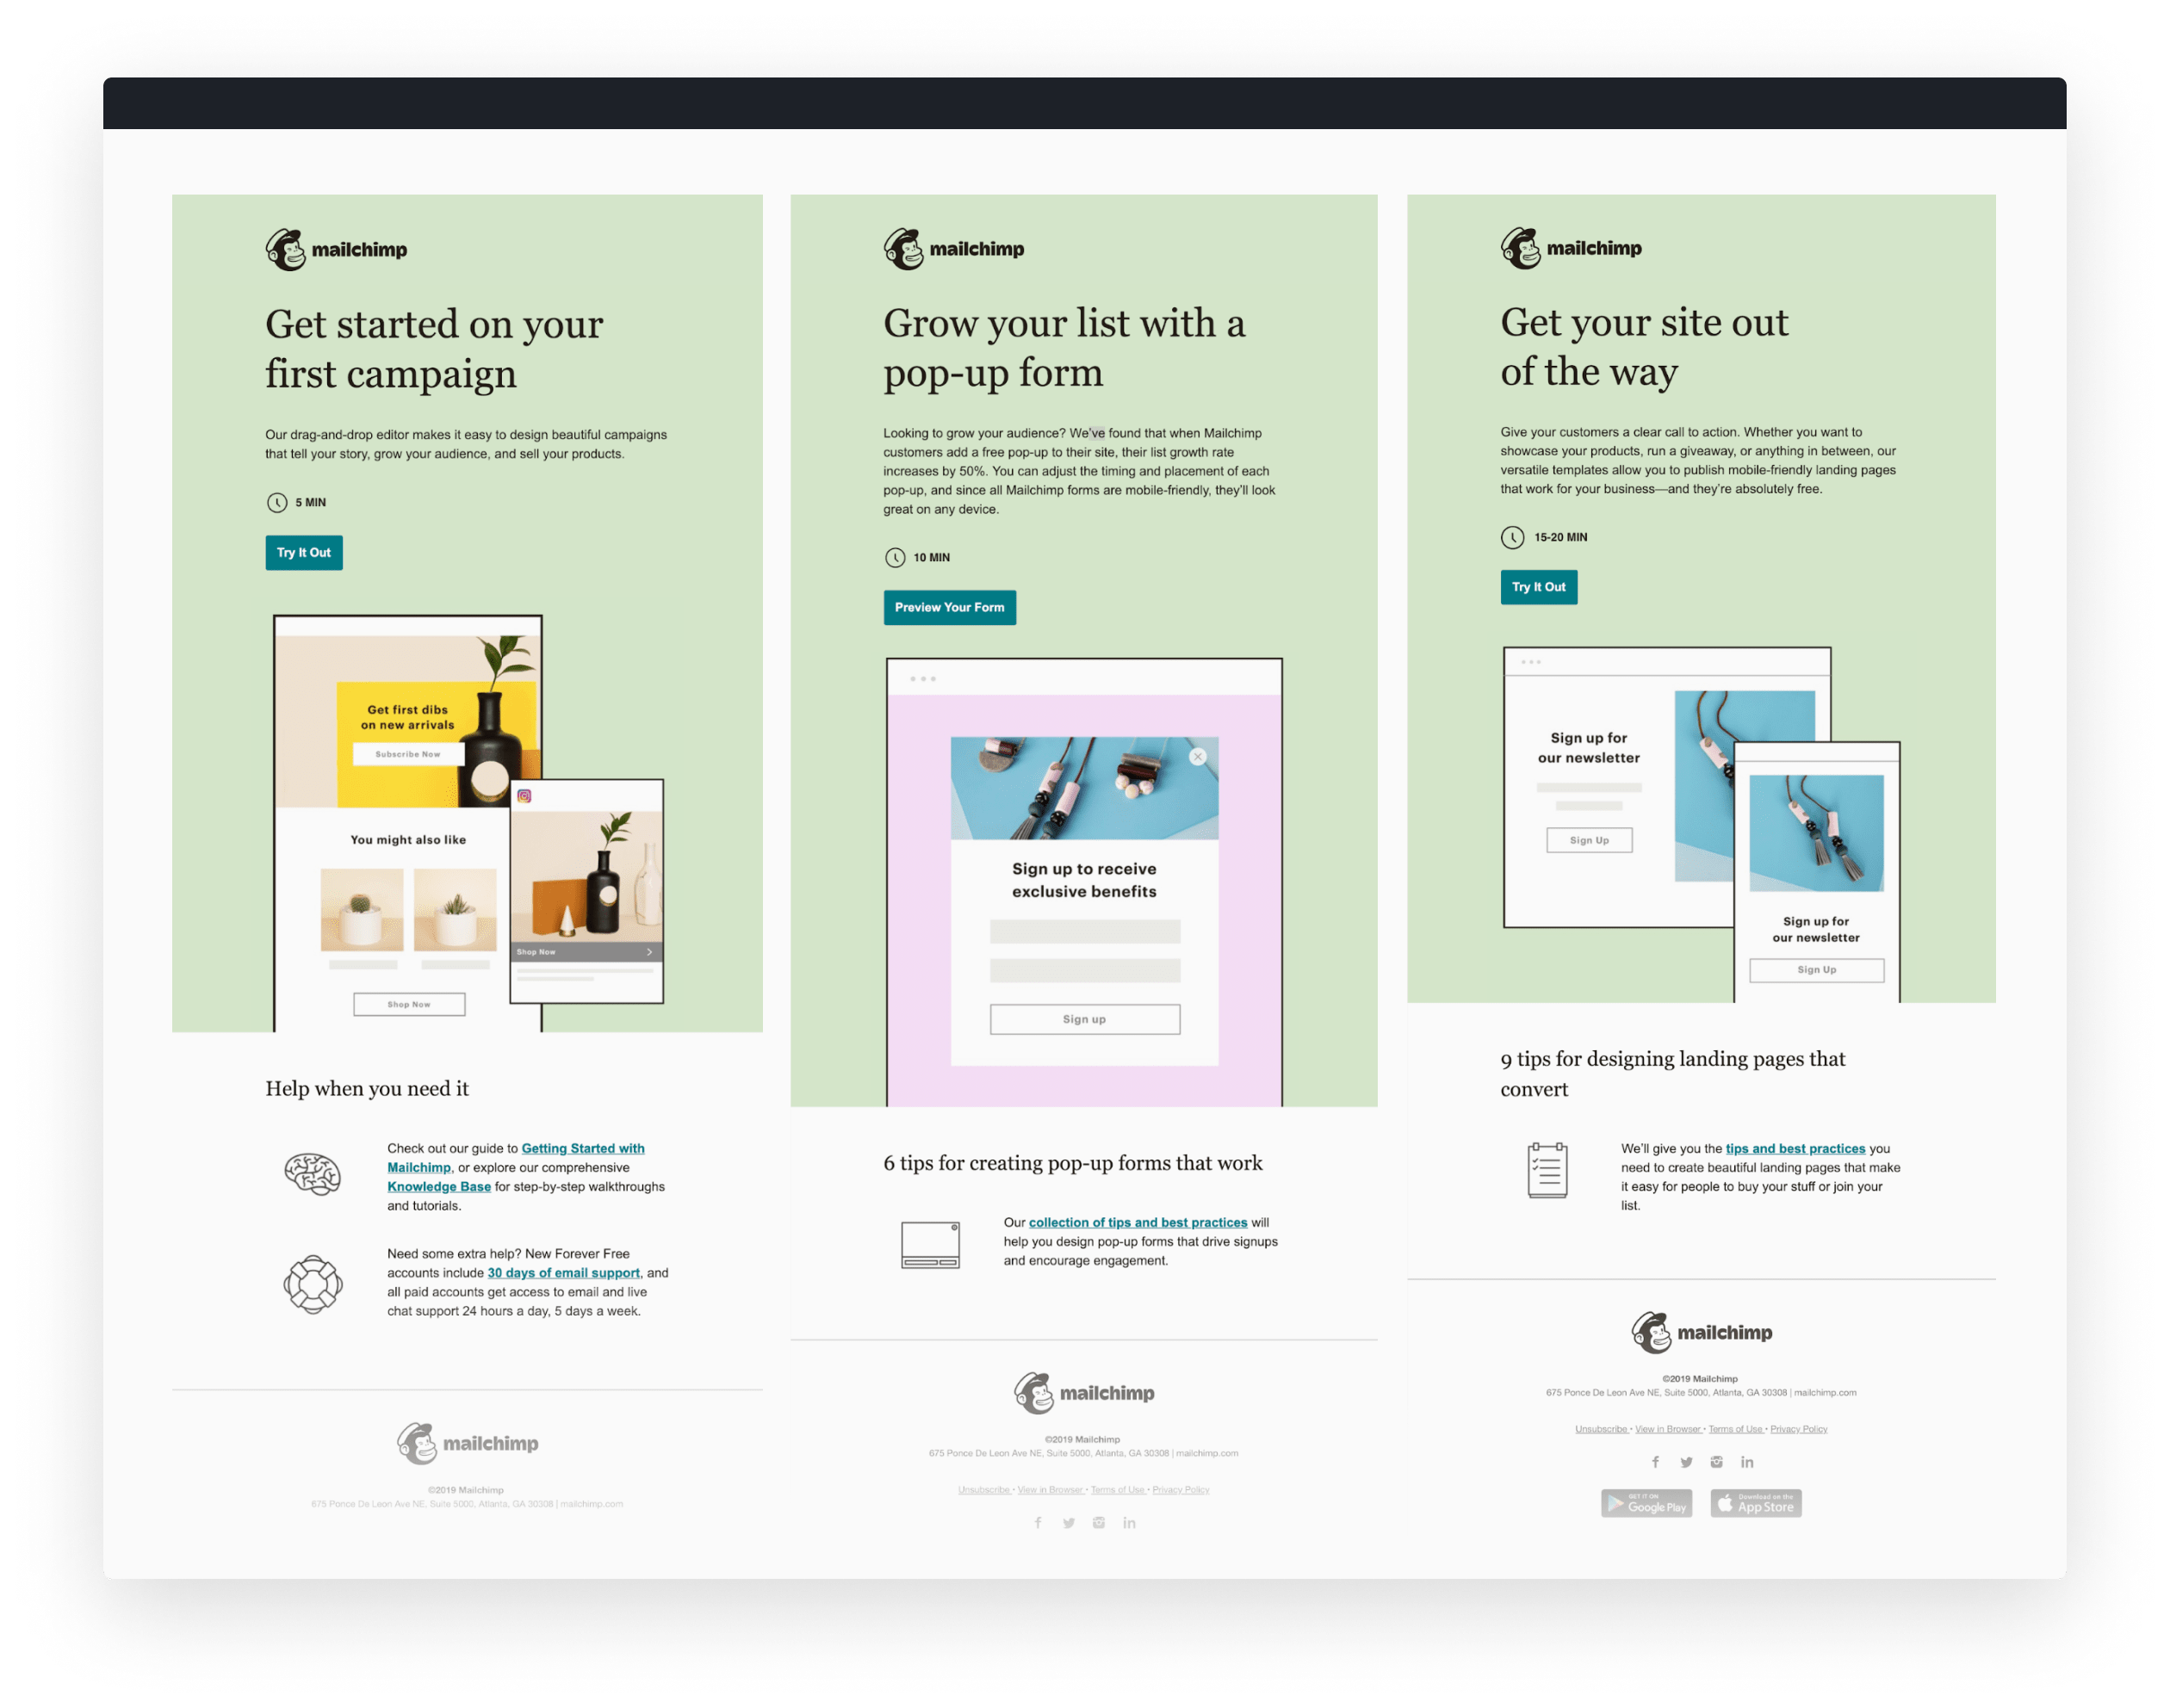 Just a few of the emails in Mailchimp's updated onboarding program.